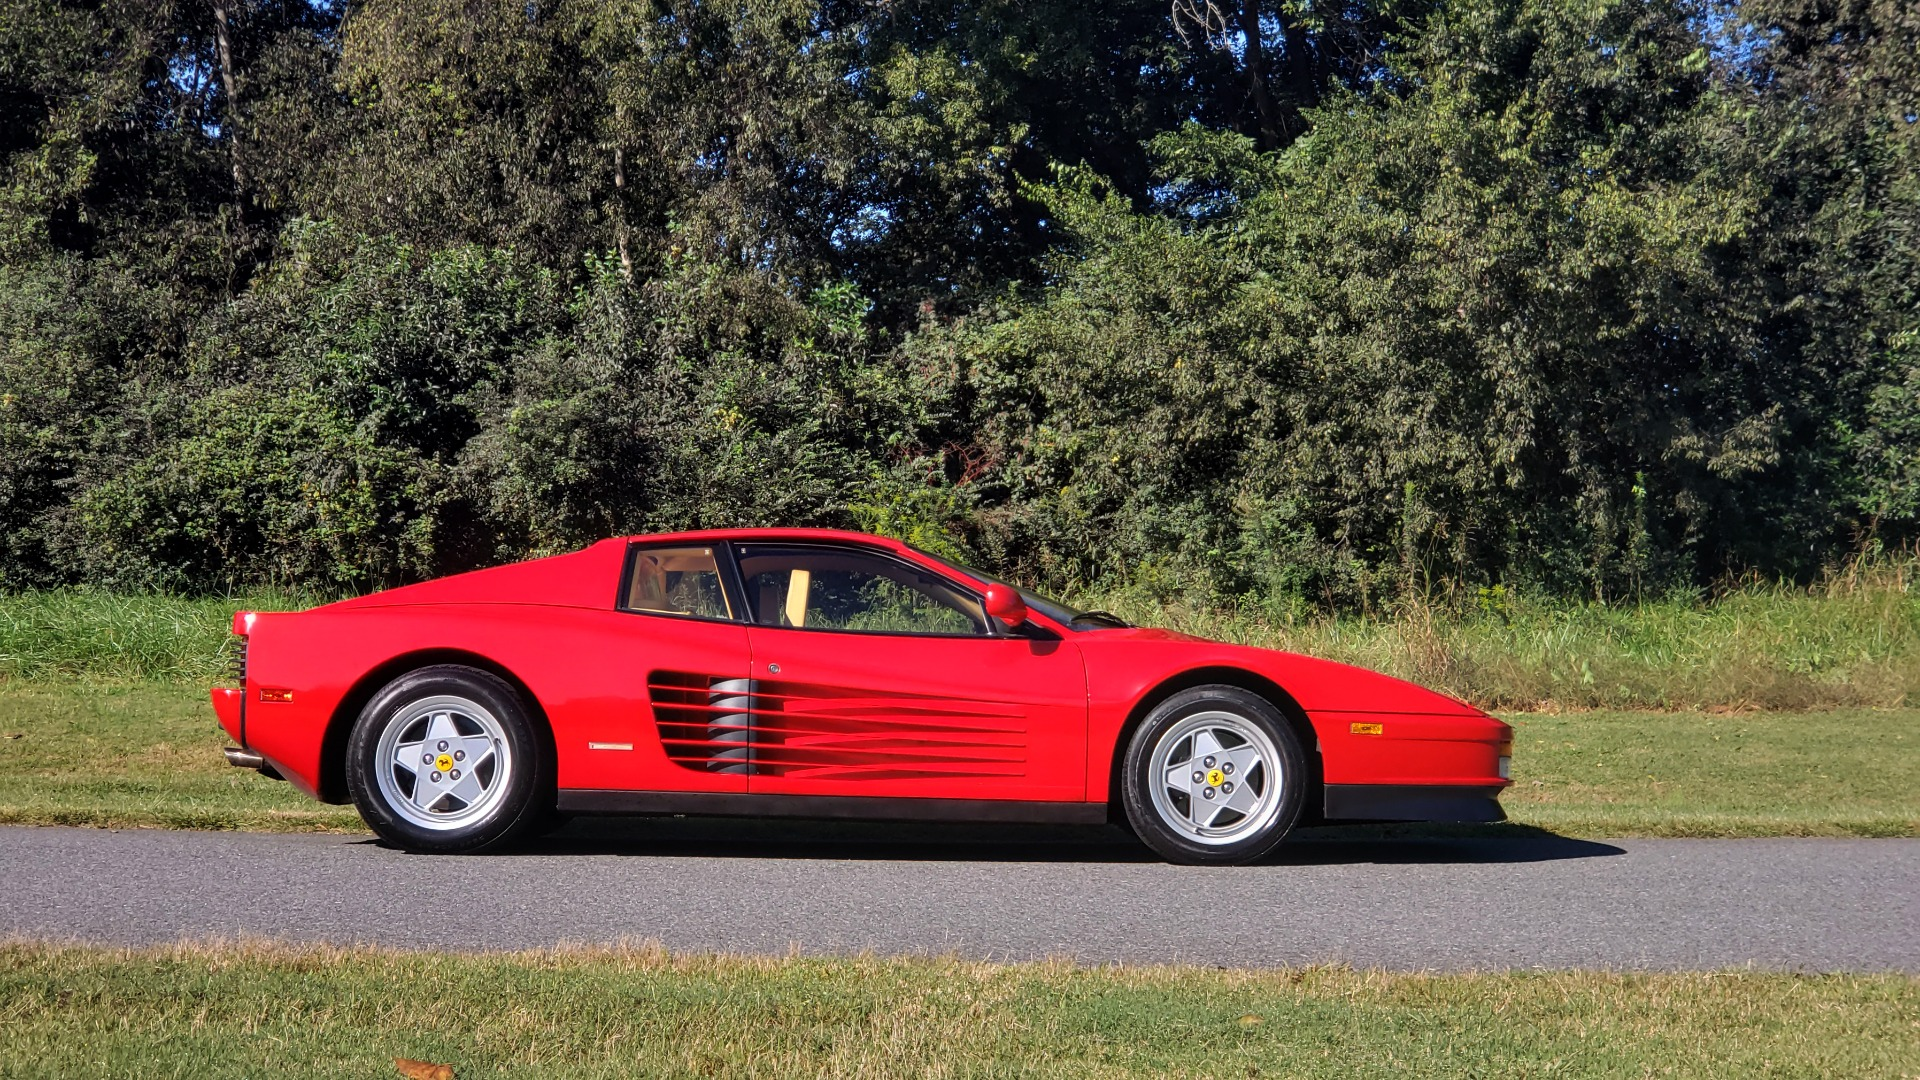 Used 1988 Ferrari TESTAROSSA COUPE / 4.9L FLAT-12 / 5-SPEED MANUAL / LOW MILES SUPER CLEAN for sale $128,999 at Formula Imports in Charlotte NC 28227 11